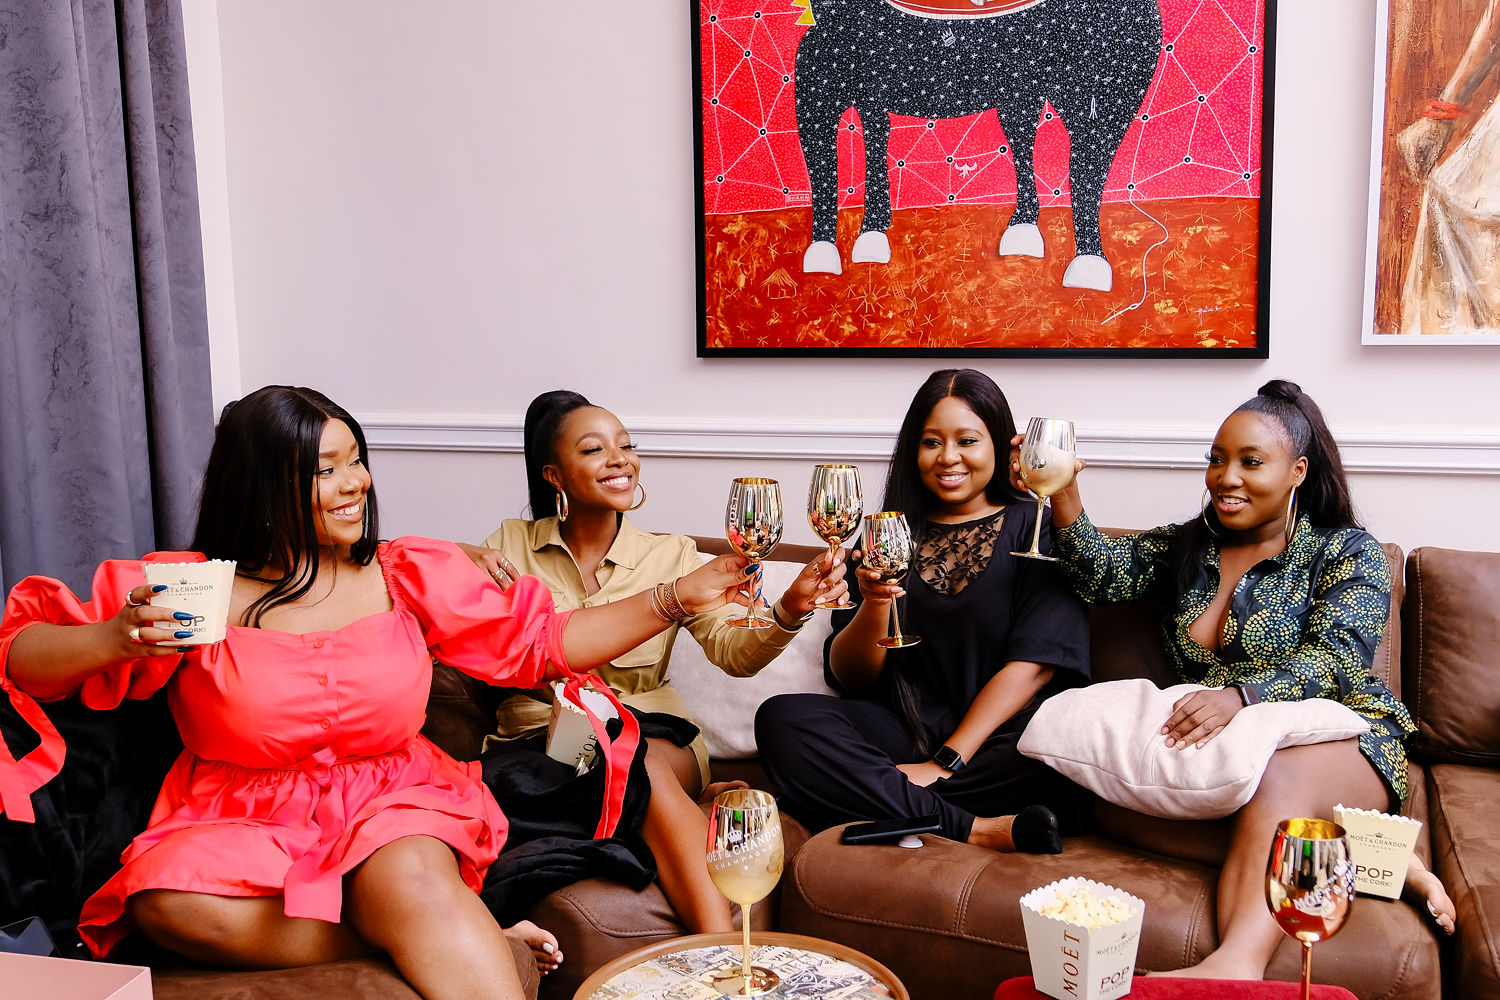 inidima-okojie-namaste-wahala-viewing-party-style-rave